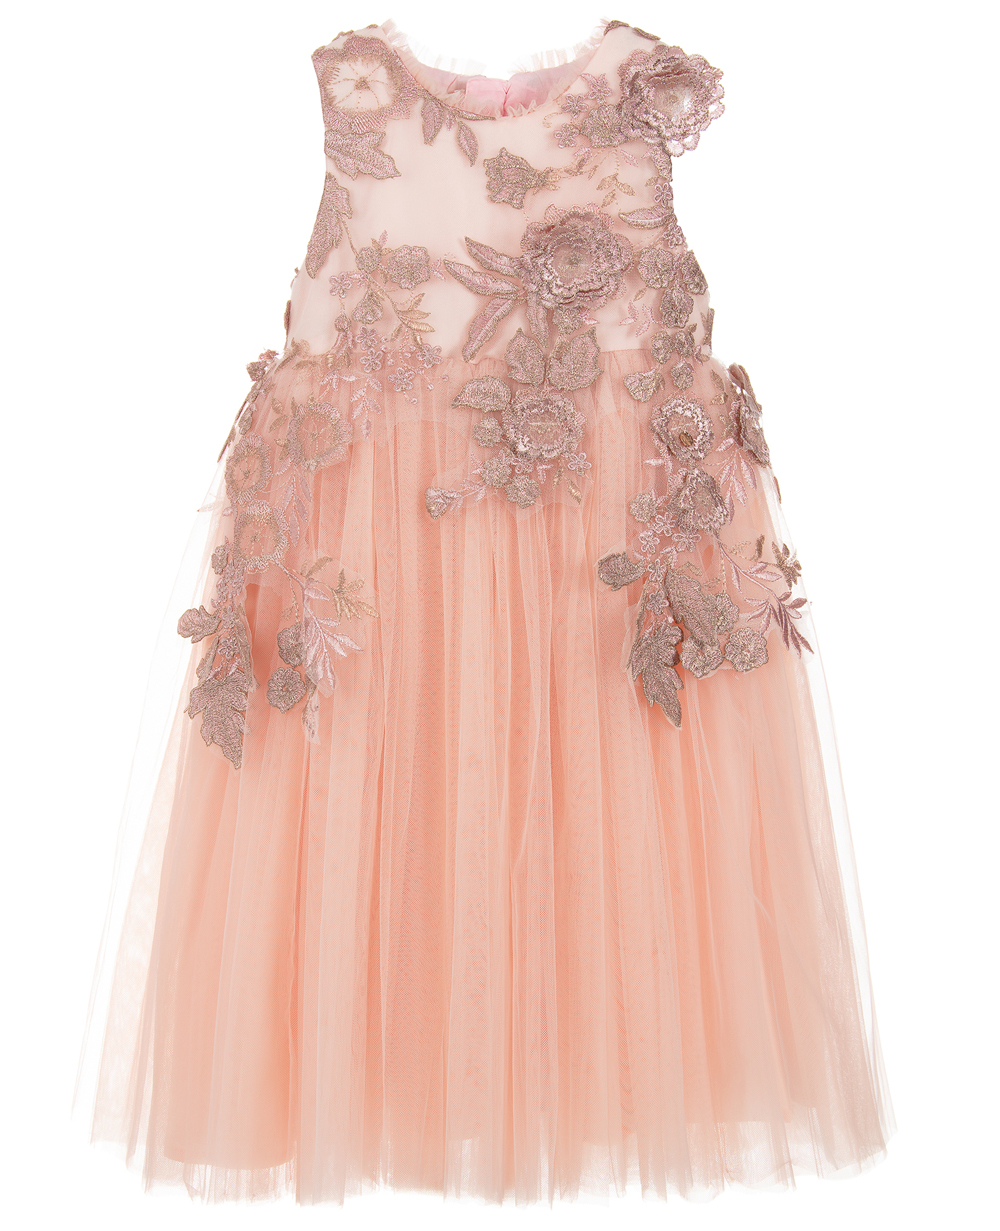 Champagne Dress with Flower Embrodiery Formal Wear Floral Dress Flowergirl